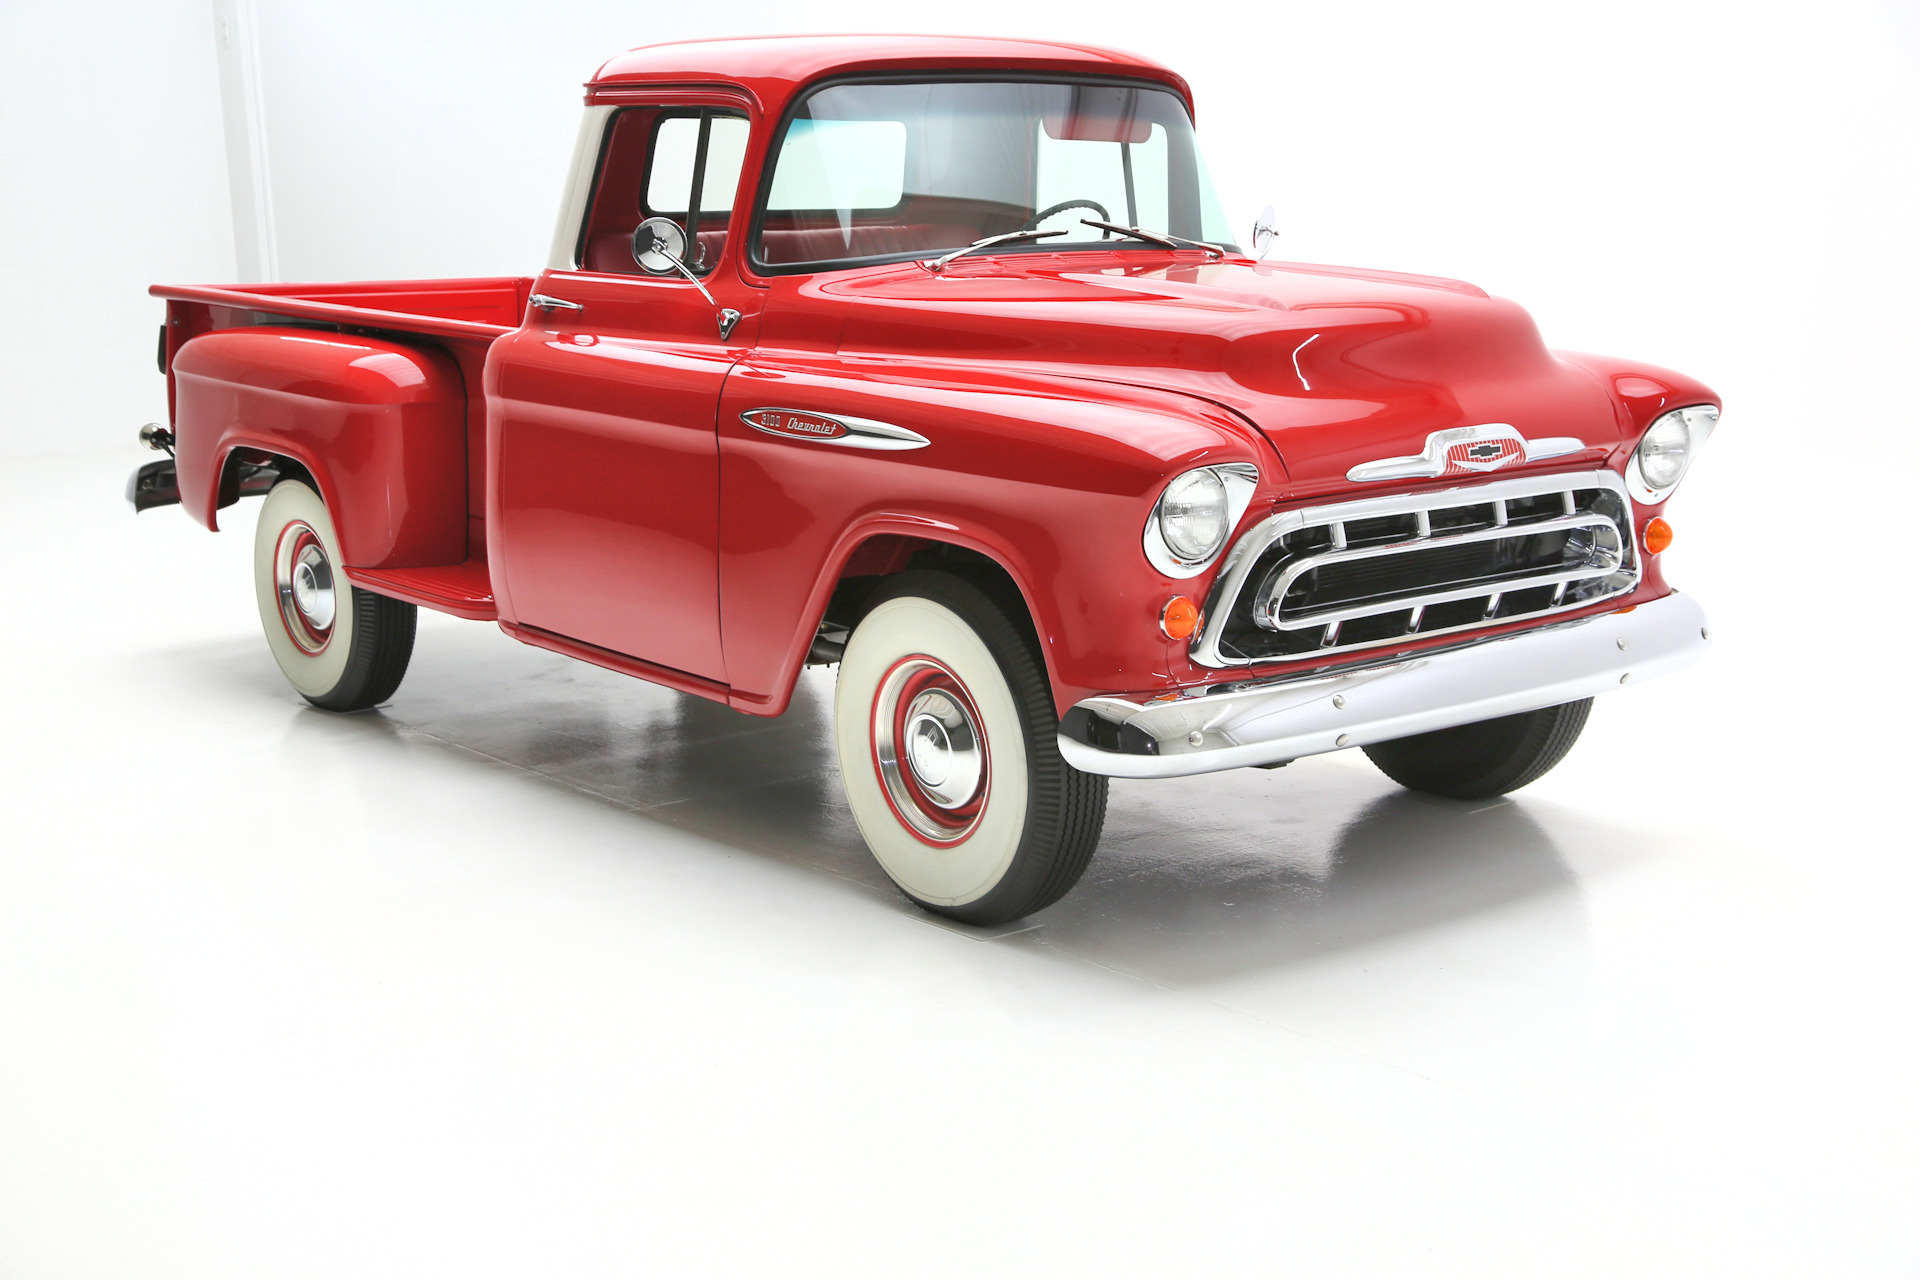 1957 Chevrolet Pickup Awesome Truck American Dream